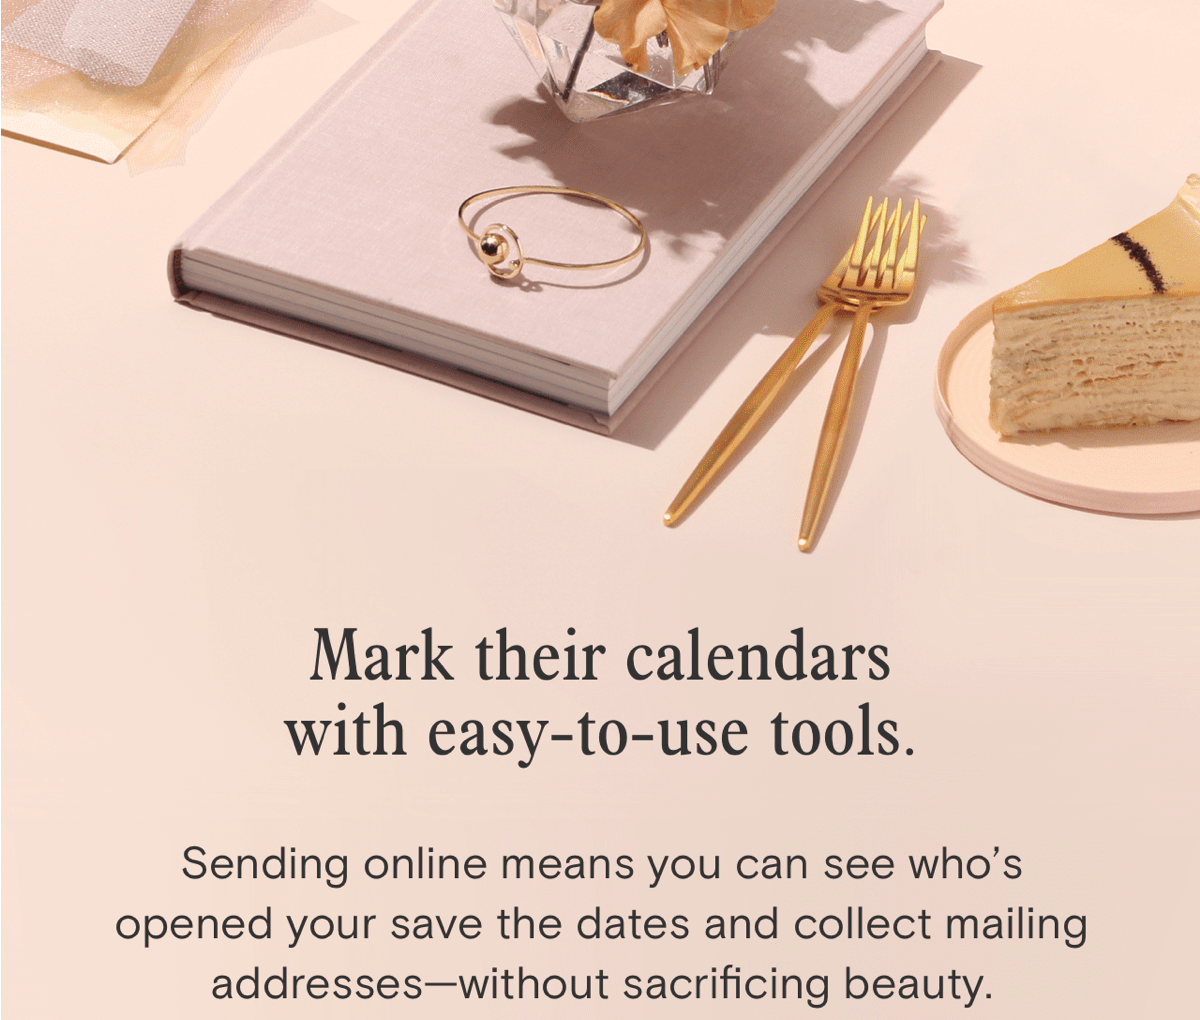 Mark their calendars with easy-to-use tools